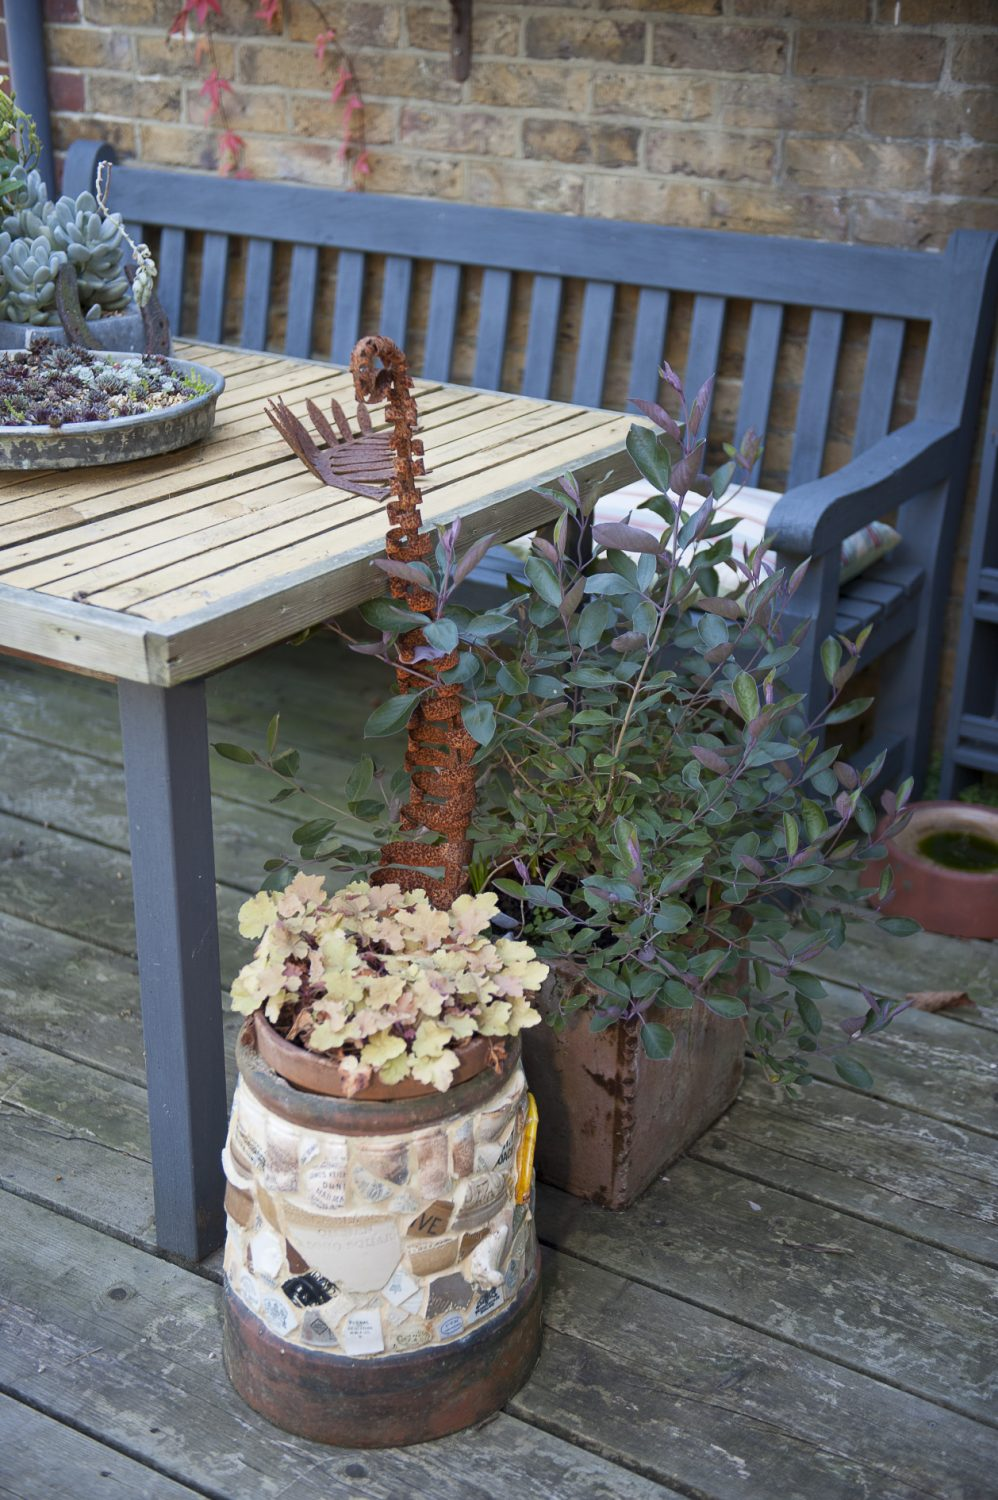 The decking area was made using reclaimed scaffolding boards